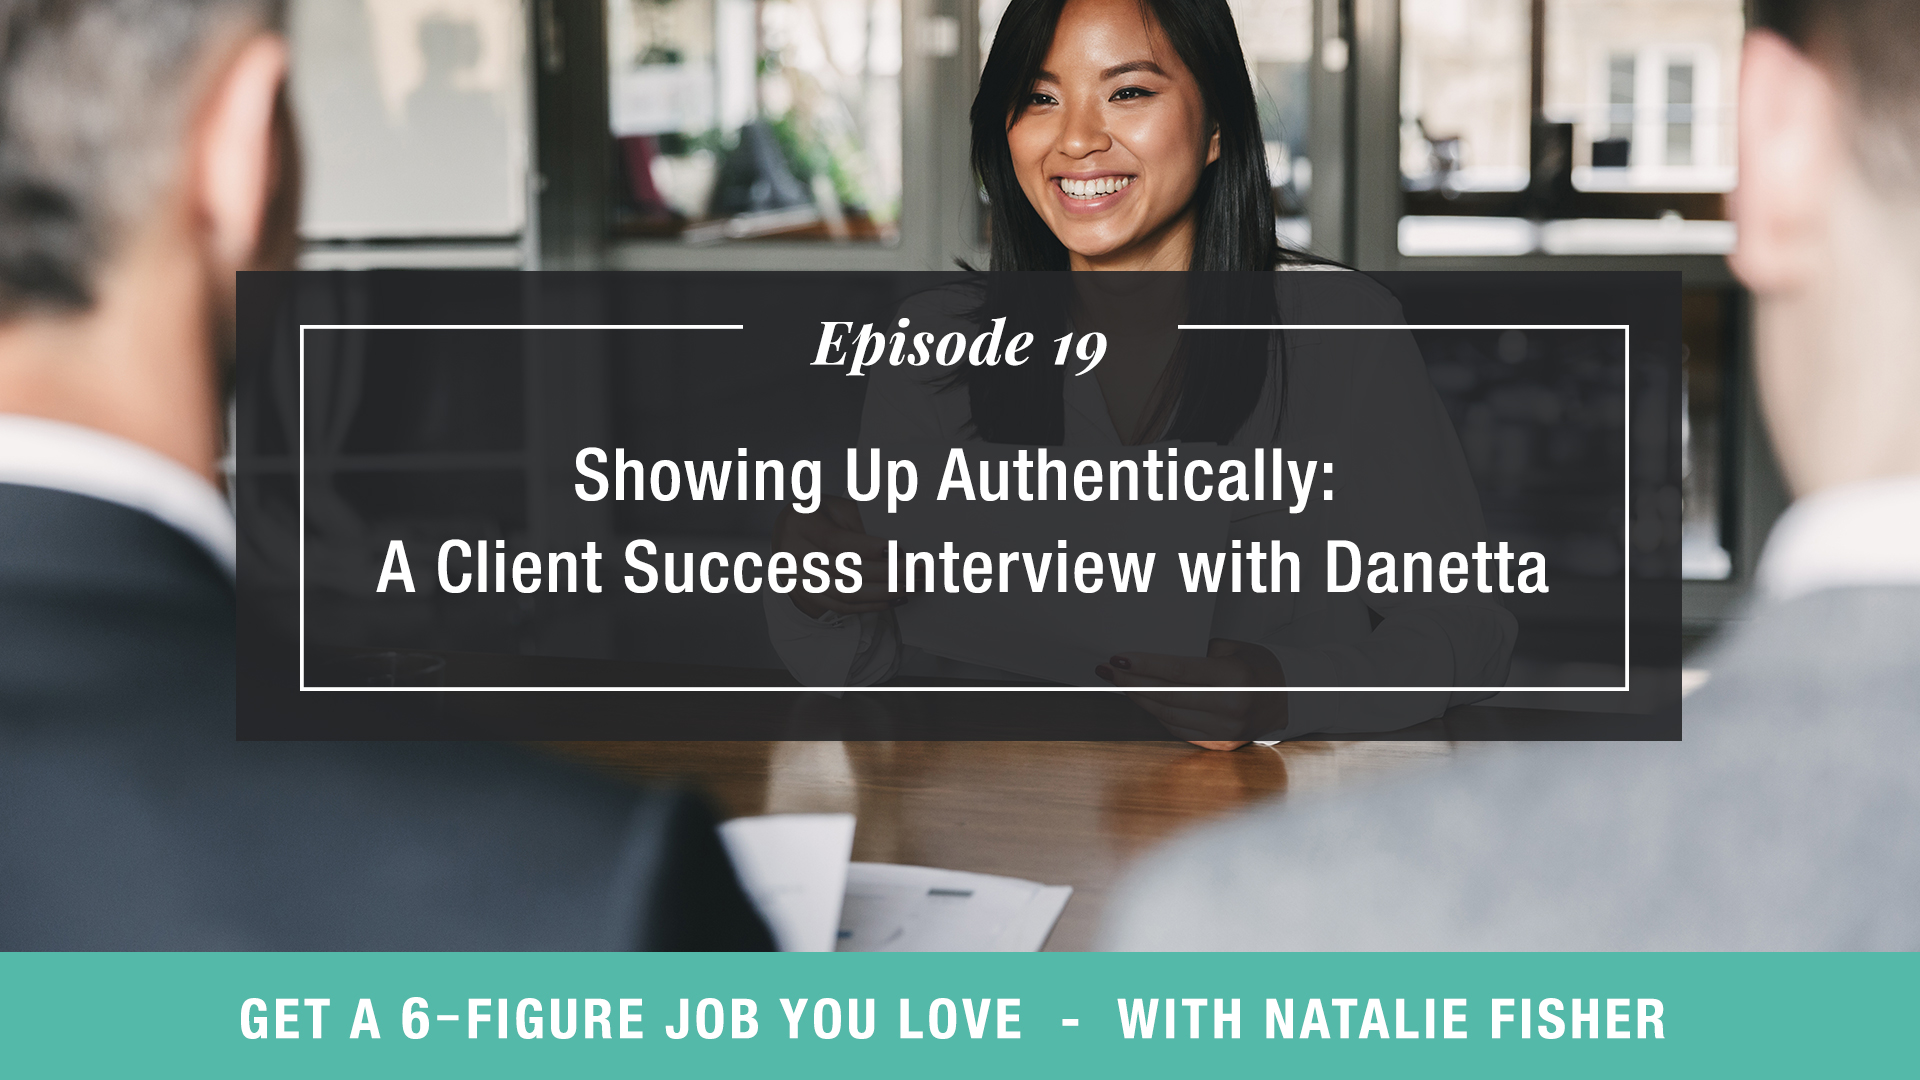 Showing Up Authentically: A Client Success Interview with Danetta